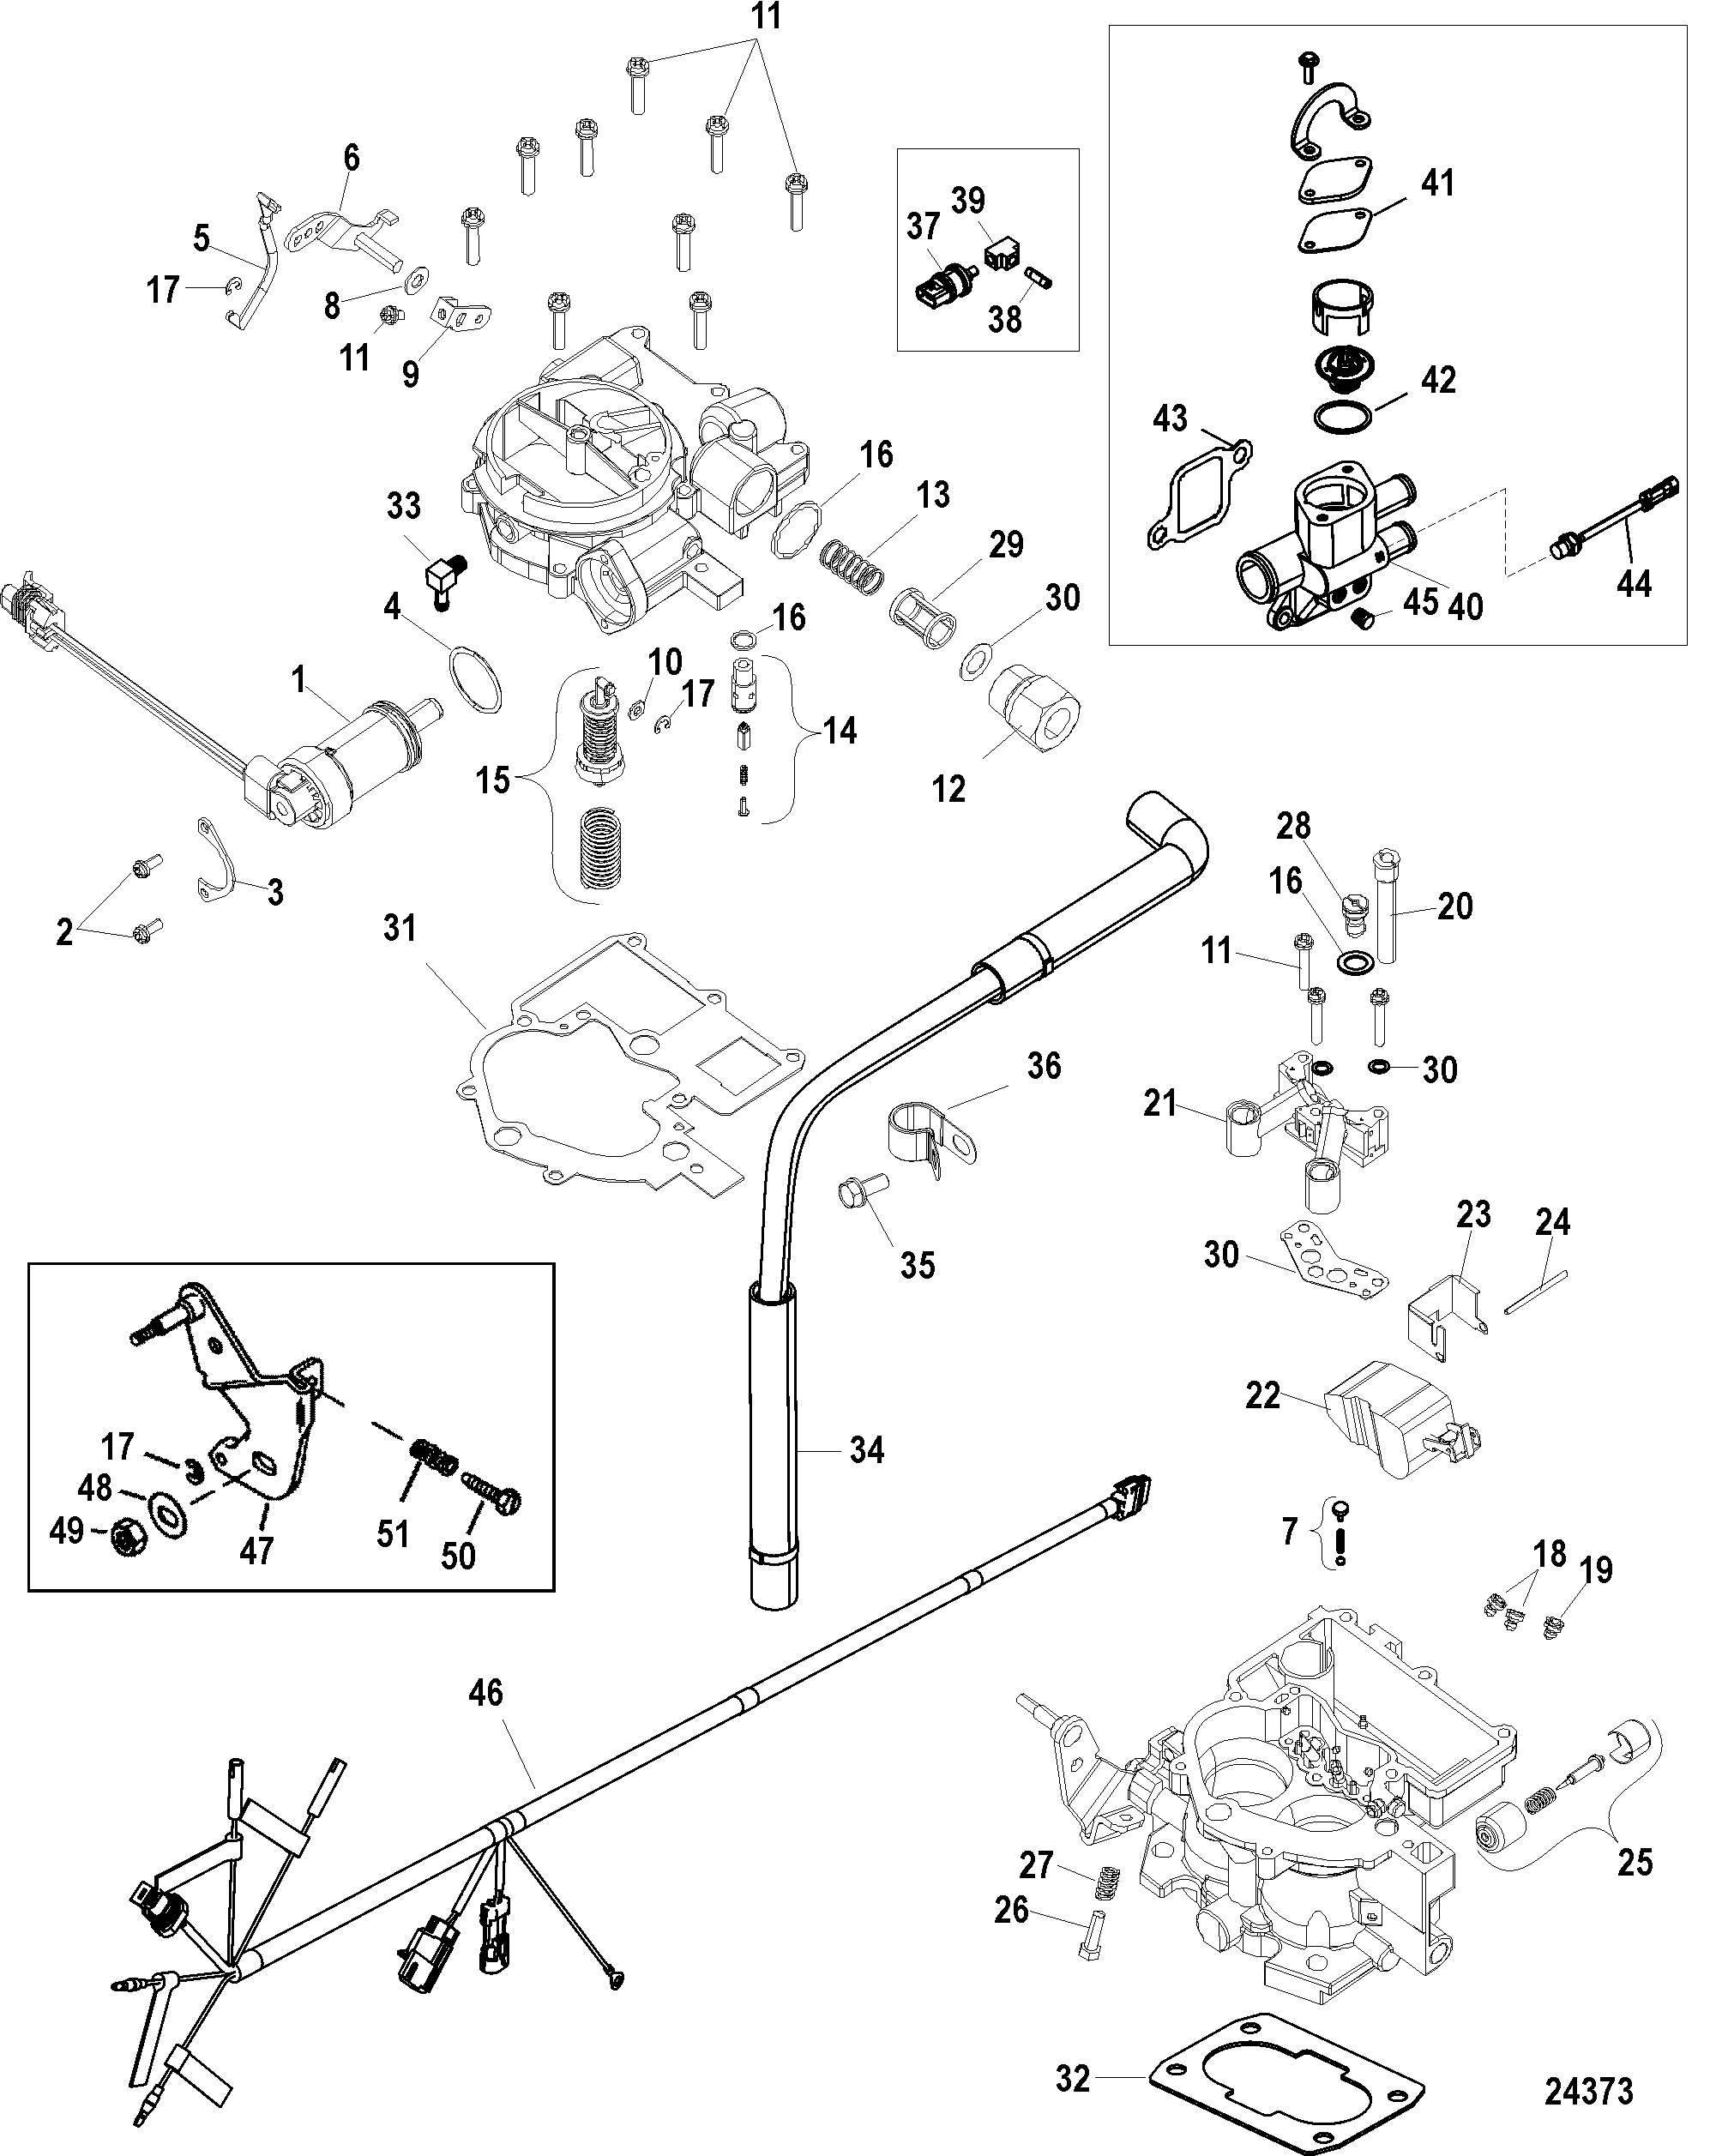 3 0 Mercruiser Wiring Diagram Diagrams Knight 7 Wire Trailer Mercury Outboard Engine Parts On Images 25 Hp